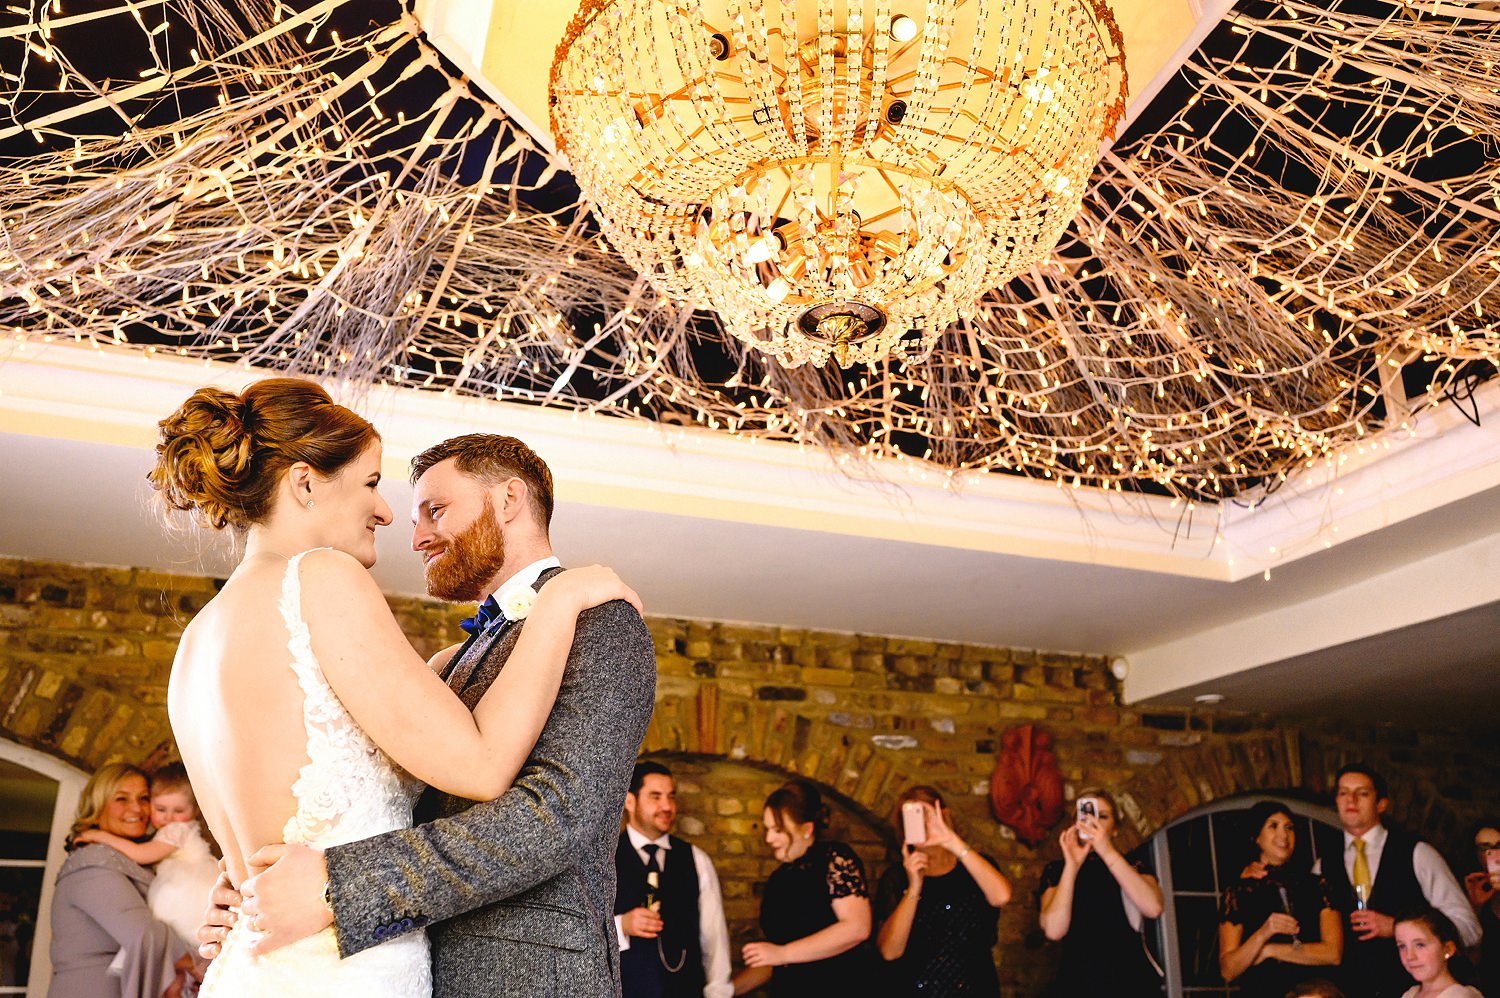 Bride and groom first dance at Friern Manor Wedding Venue in Brentwood